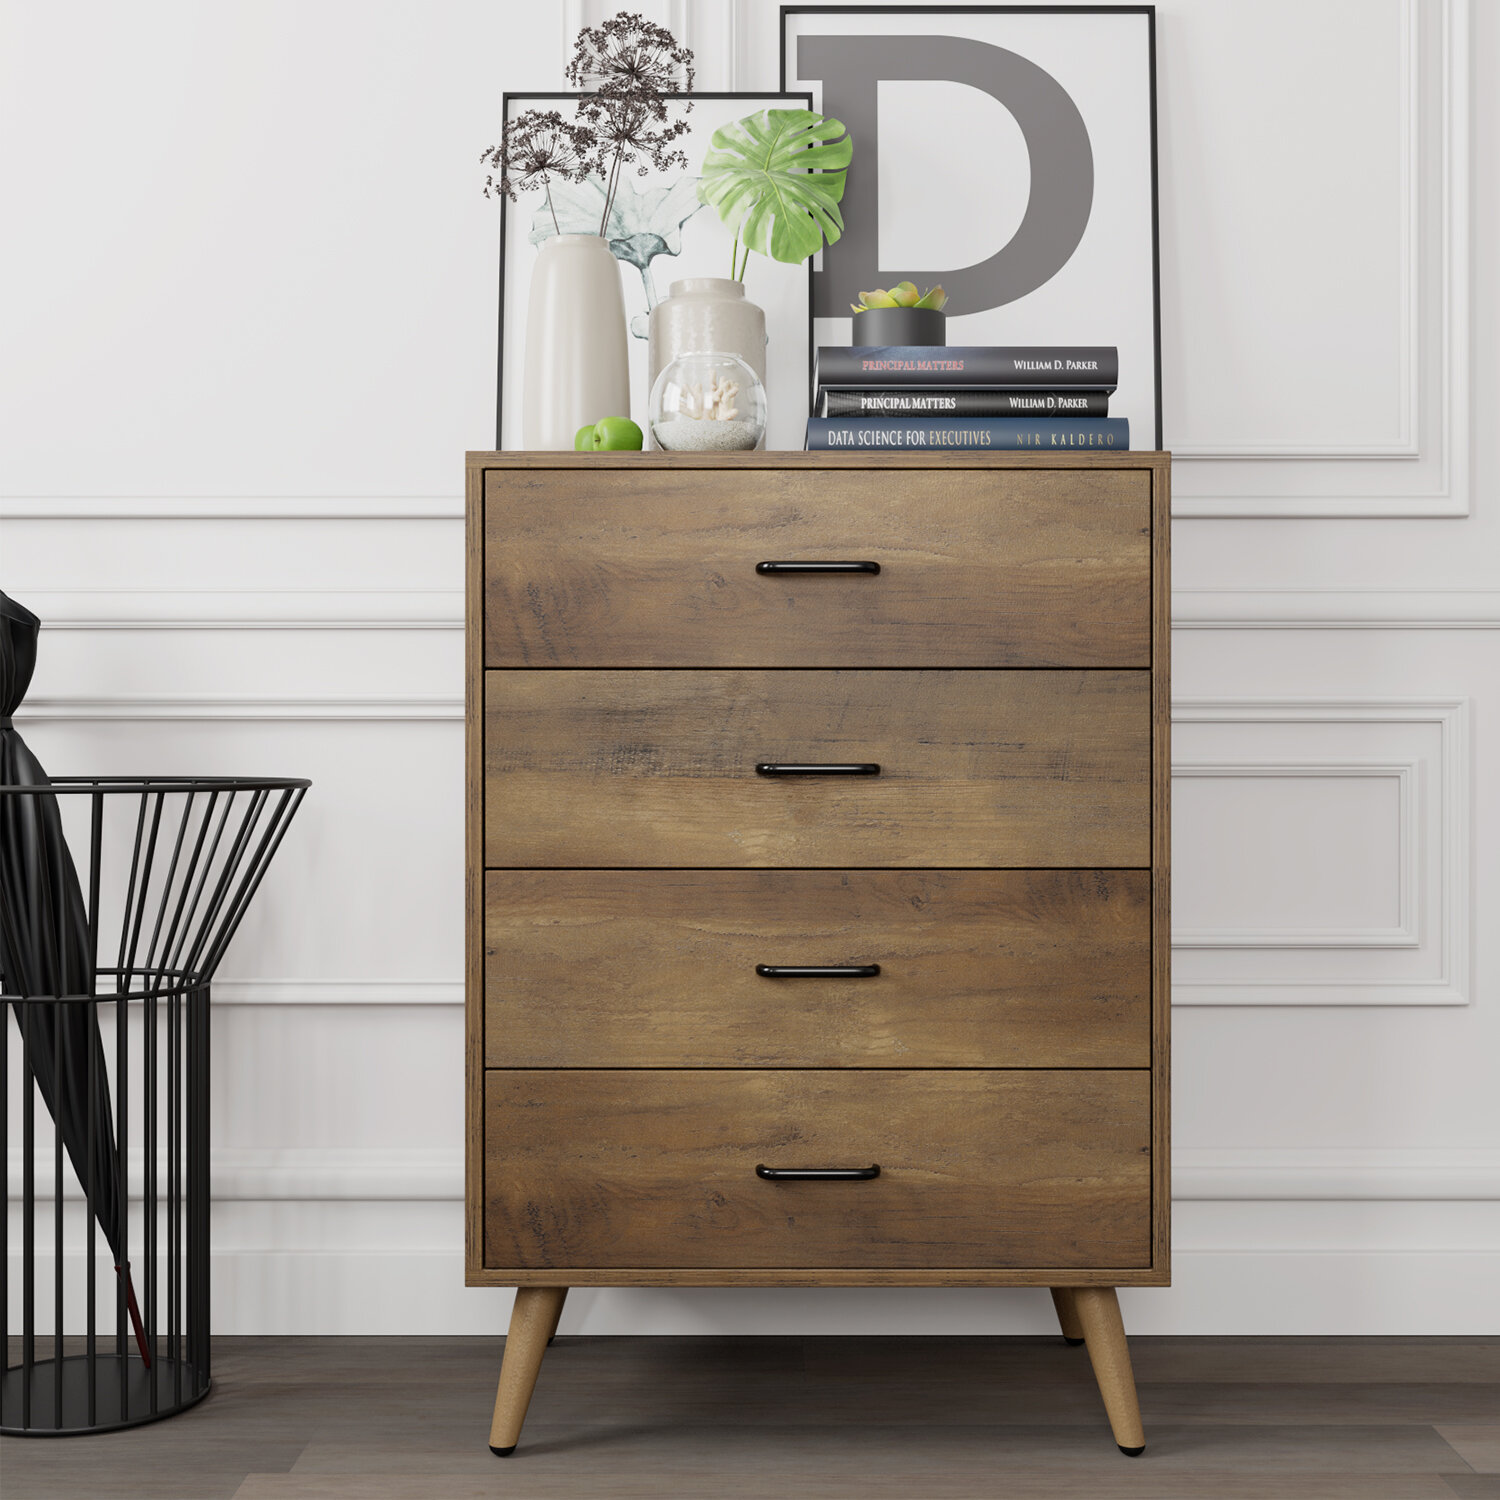 Corrigan Studio 4 Drawer Dresser Rustic Wood Chest Of Drawers For Bedroom Dresser Chest With Wide Storage Space Tall Nightstand Multifunctional Organizer Unit Accent Furniture For Living Room Home Office Reviews